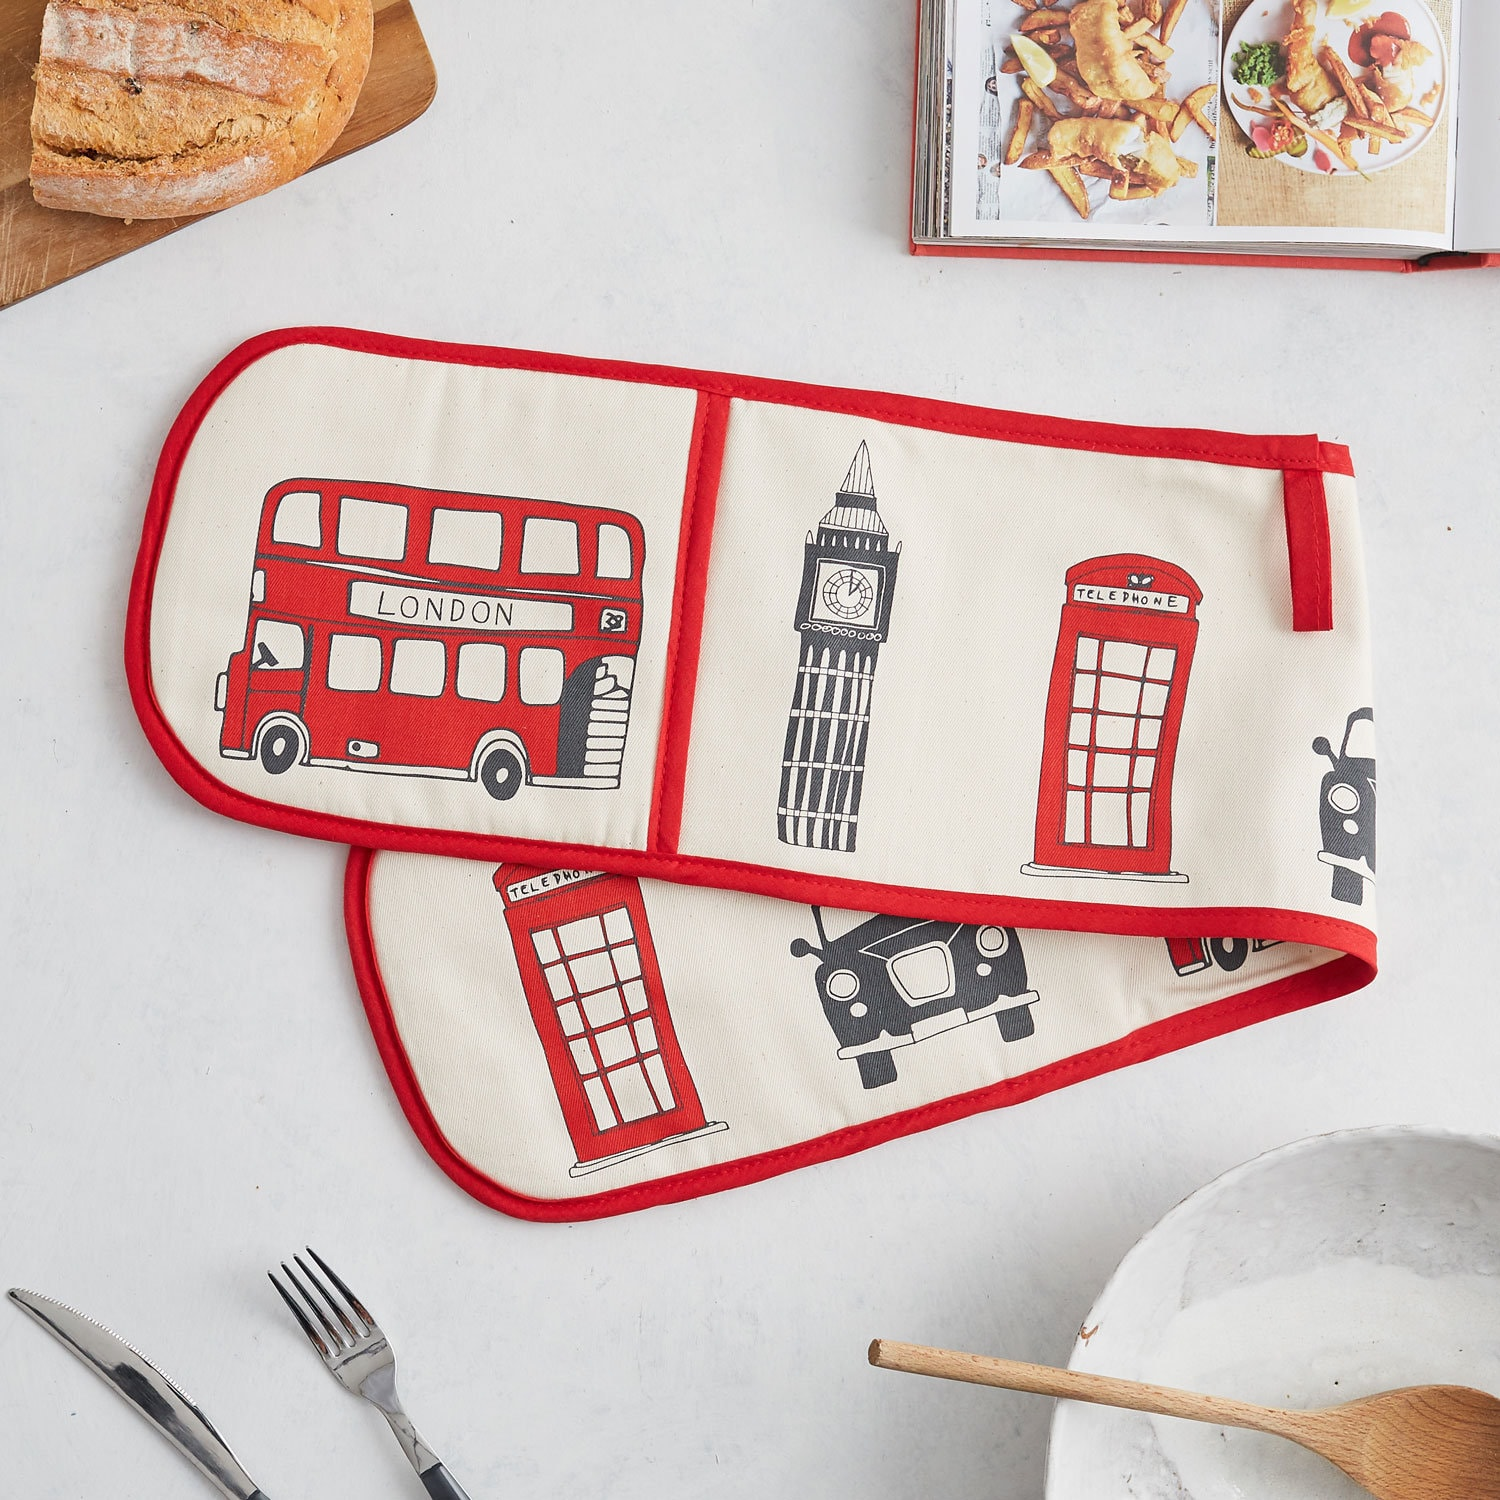 London Skyline Doppel-Backofen Handschuh